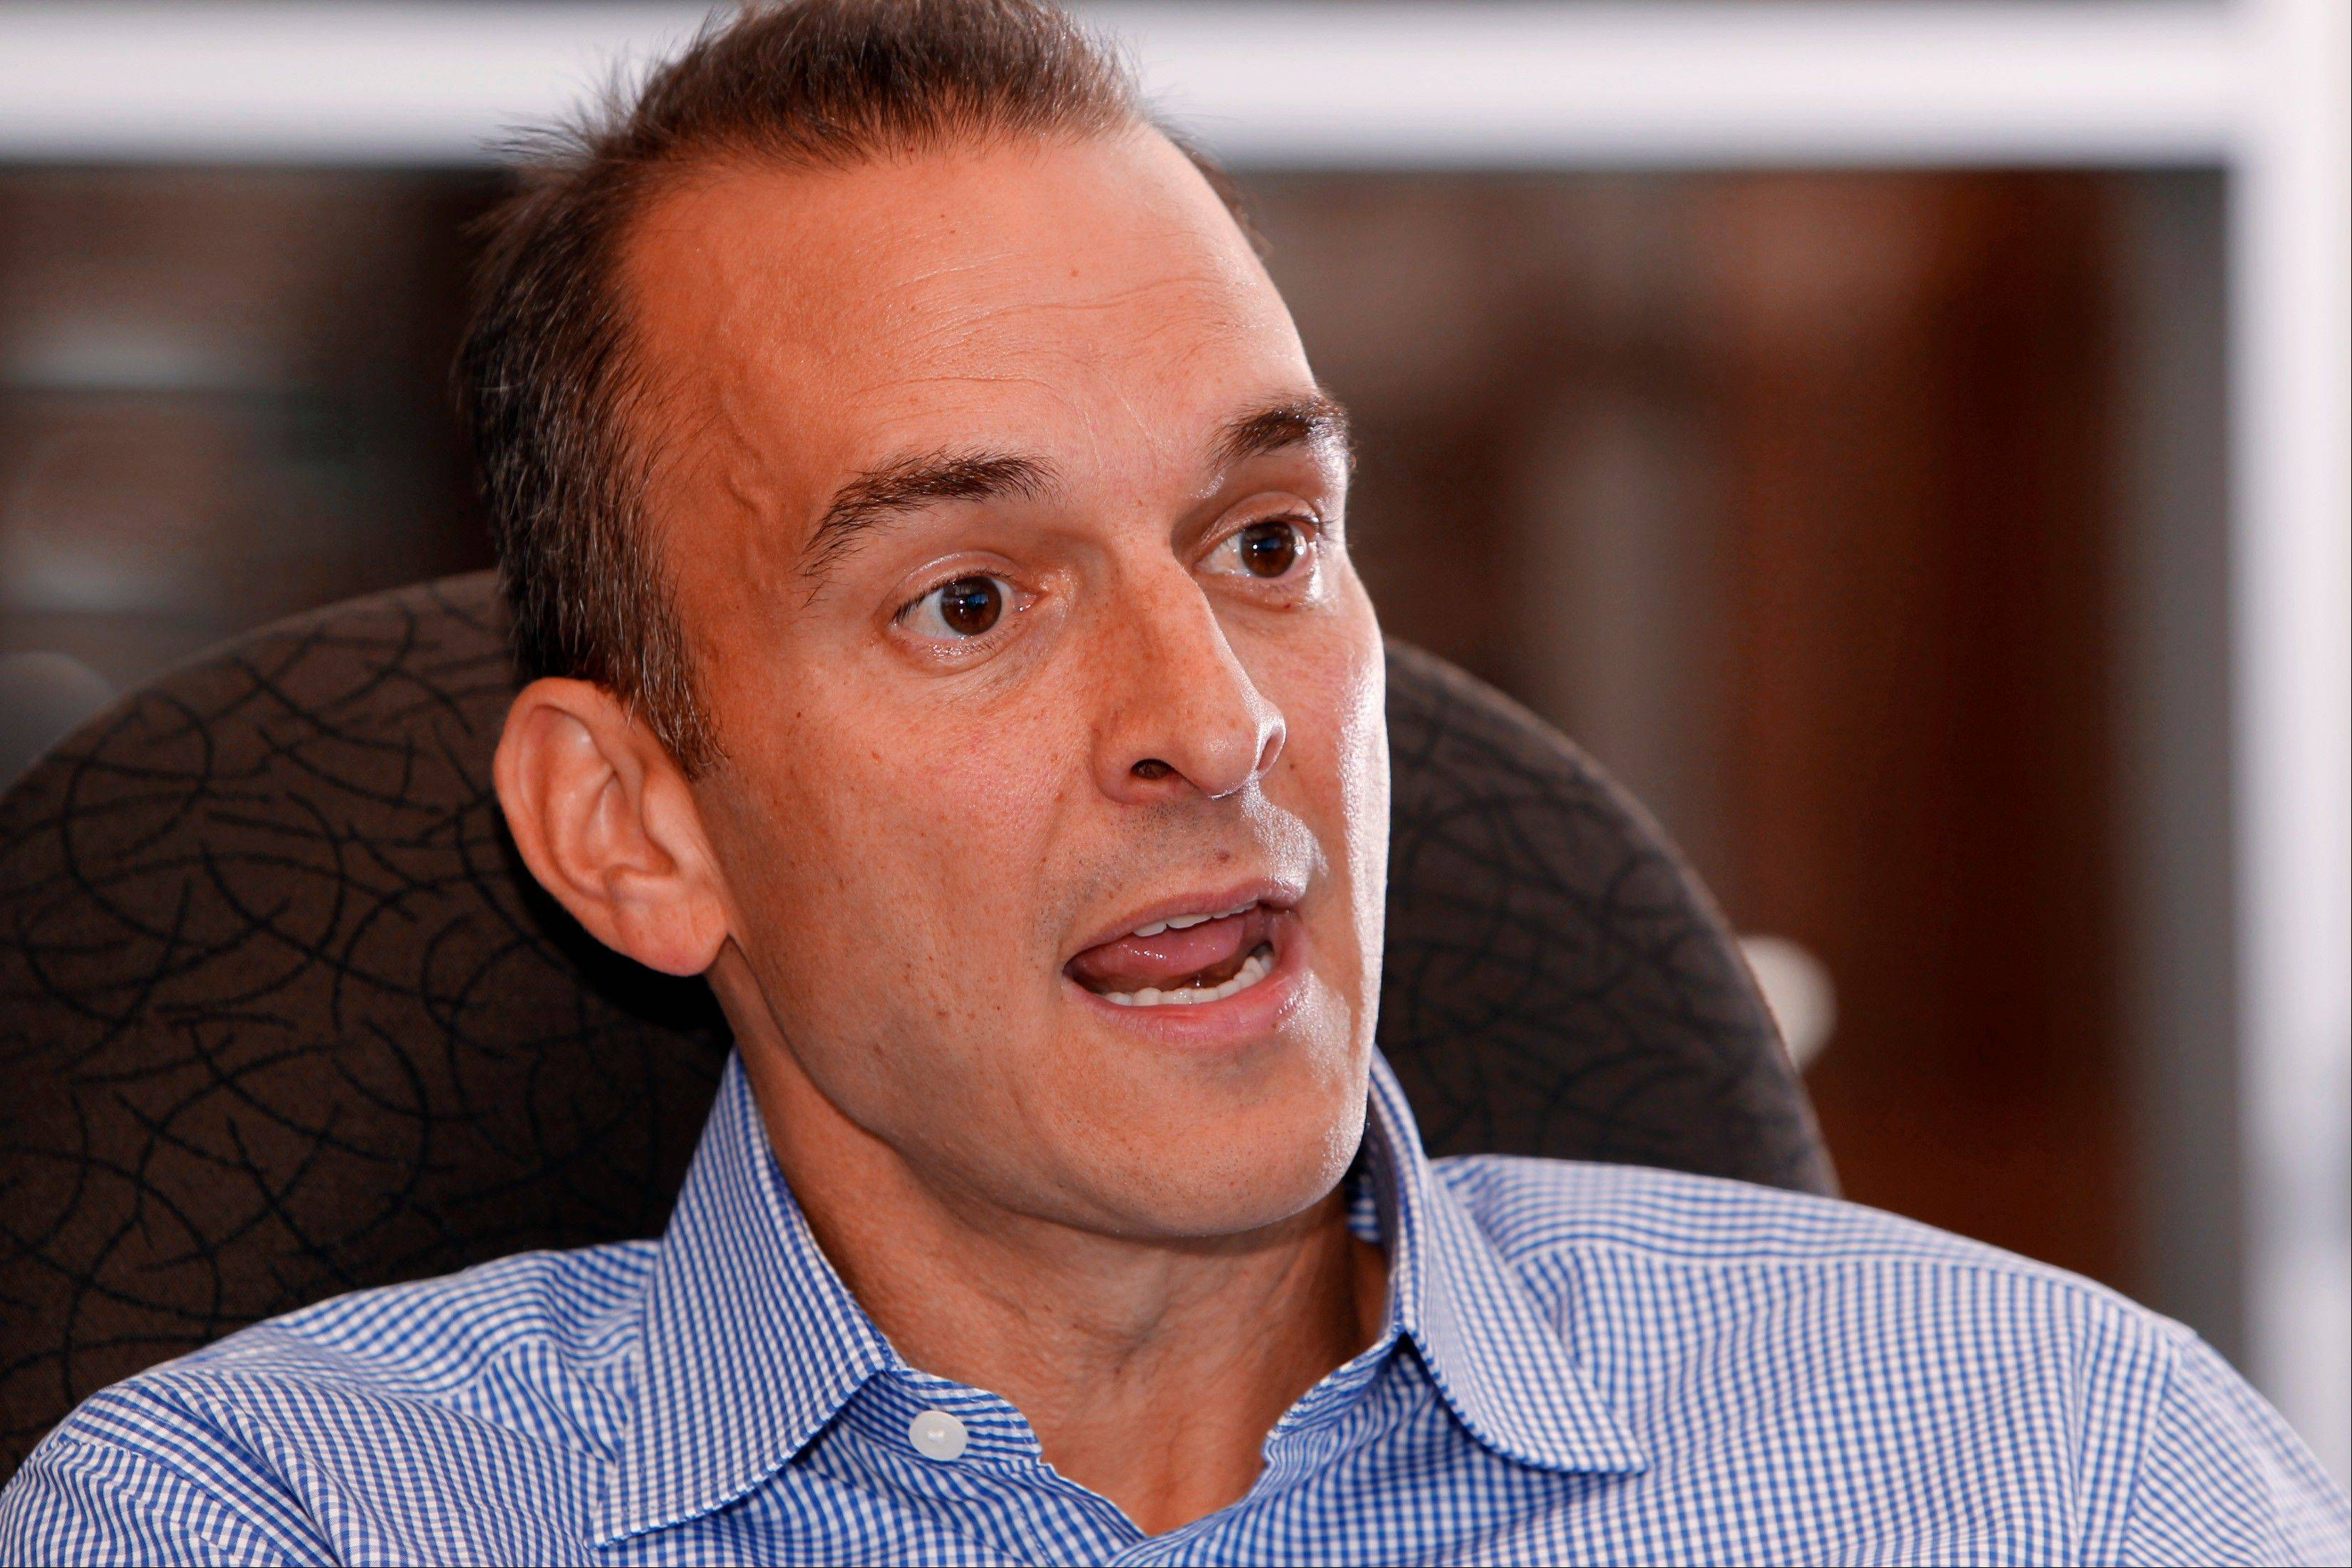 Travis Tygart, the CEO of the U.S. Anti-Doping Agency, says his mission is to make sports a sanctuary for finding out who�s most talented and who worked the hardest, not who�s the best cheater. Most recently, that mission has led him to spearhead the case that�s ended lance Armstrong�s cycling and triathlon careers.